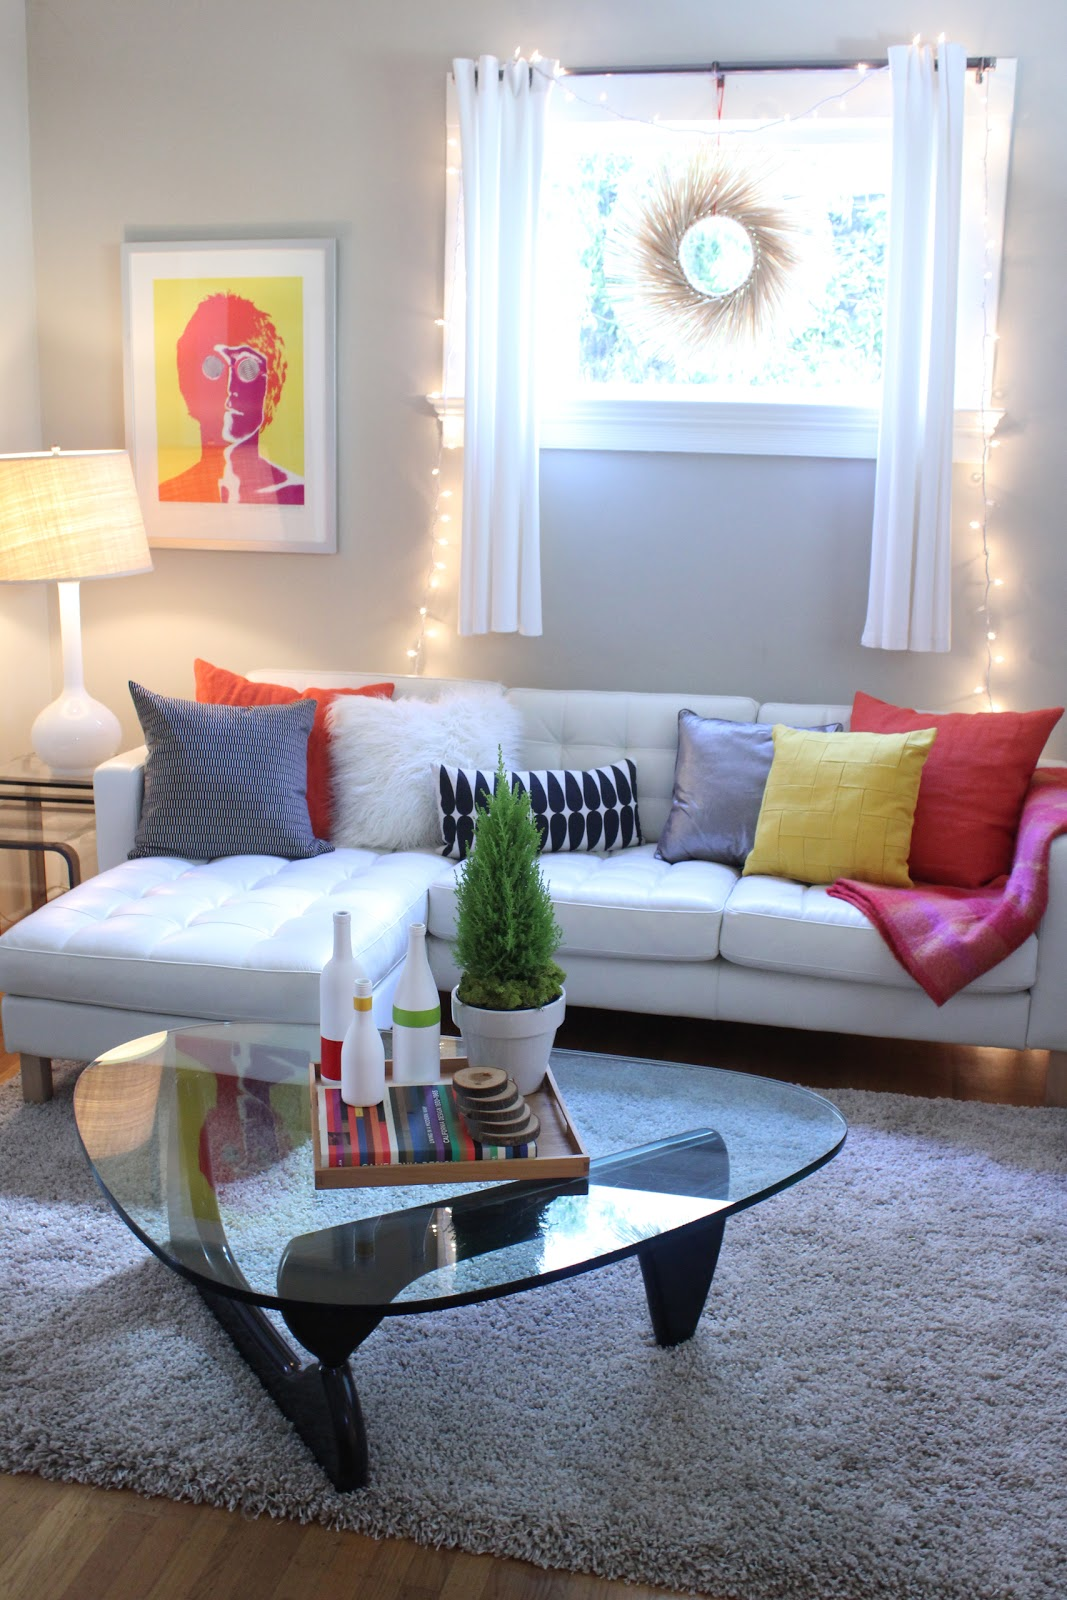 living room coffee table decorations shelves images visual jill interior design: holiday decorating, part 2 ...